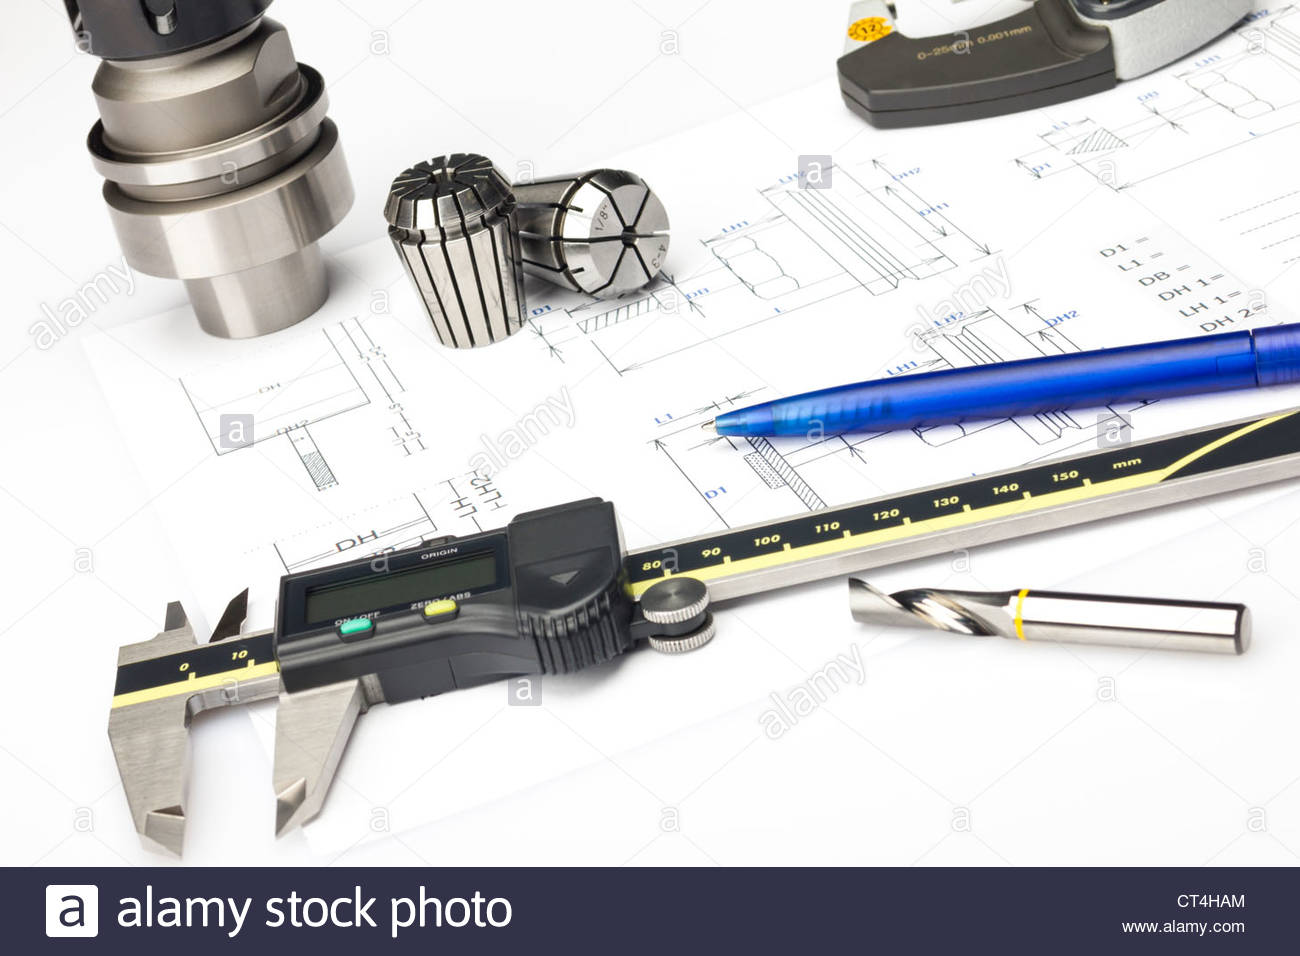 Measuring machining tools - caliper and milling tools on blueprint - Stock Image